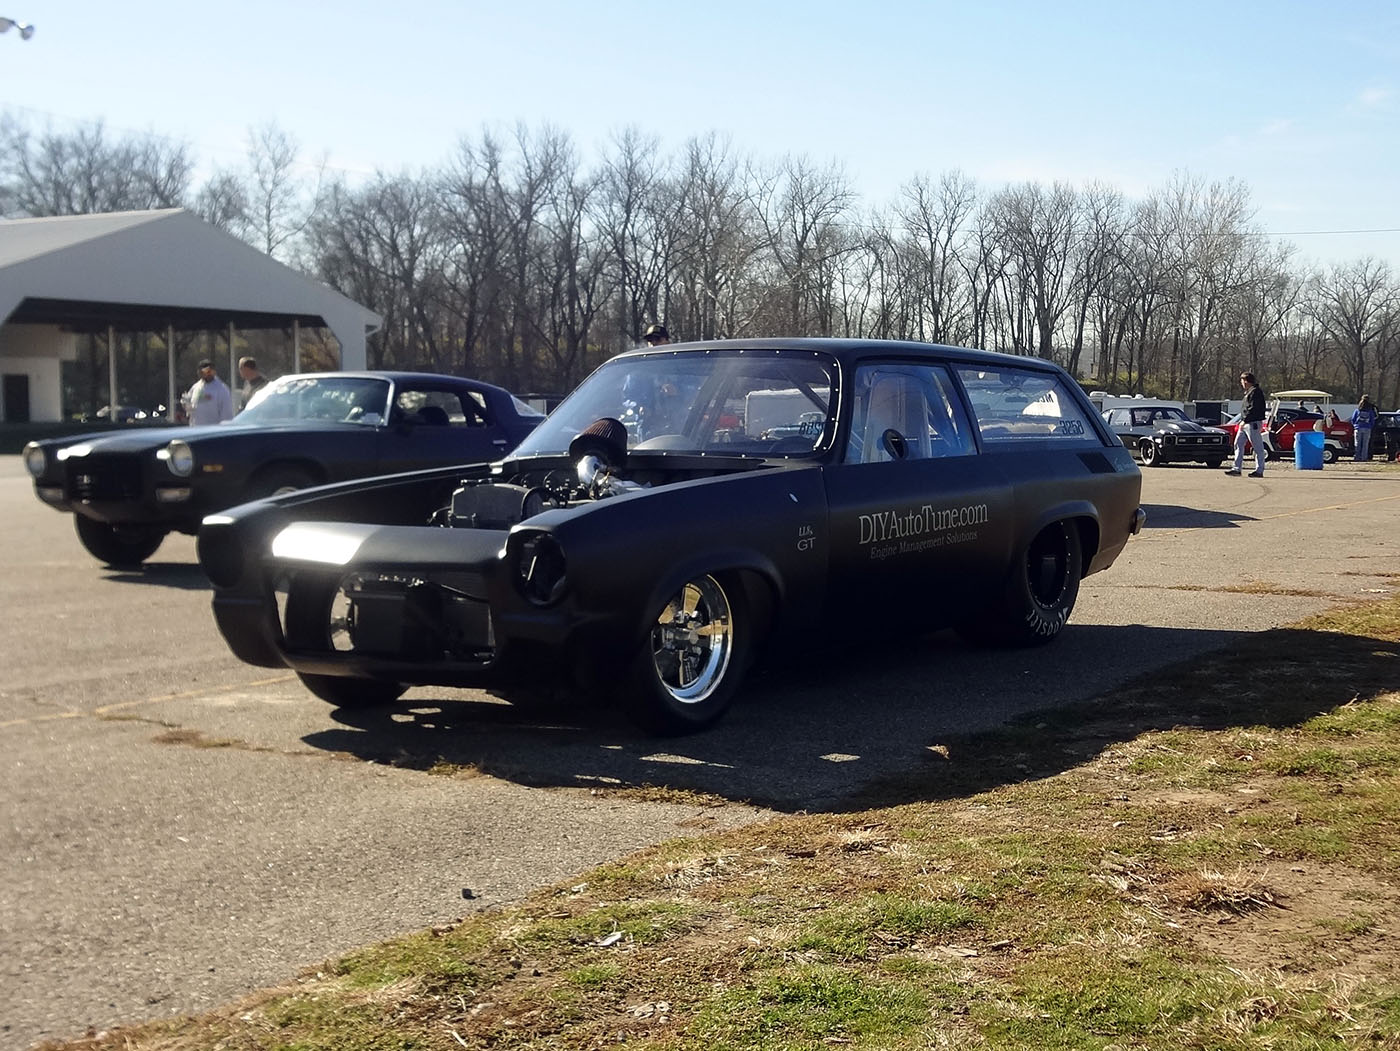 Chevy Vega Drag Car Build - Cars Image 2018